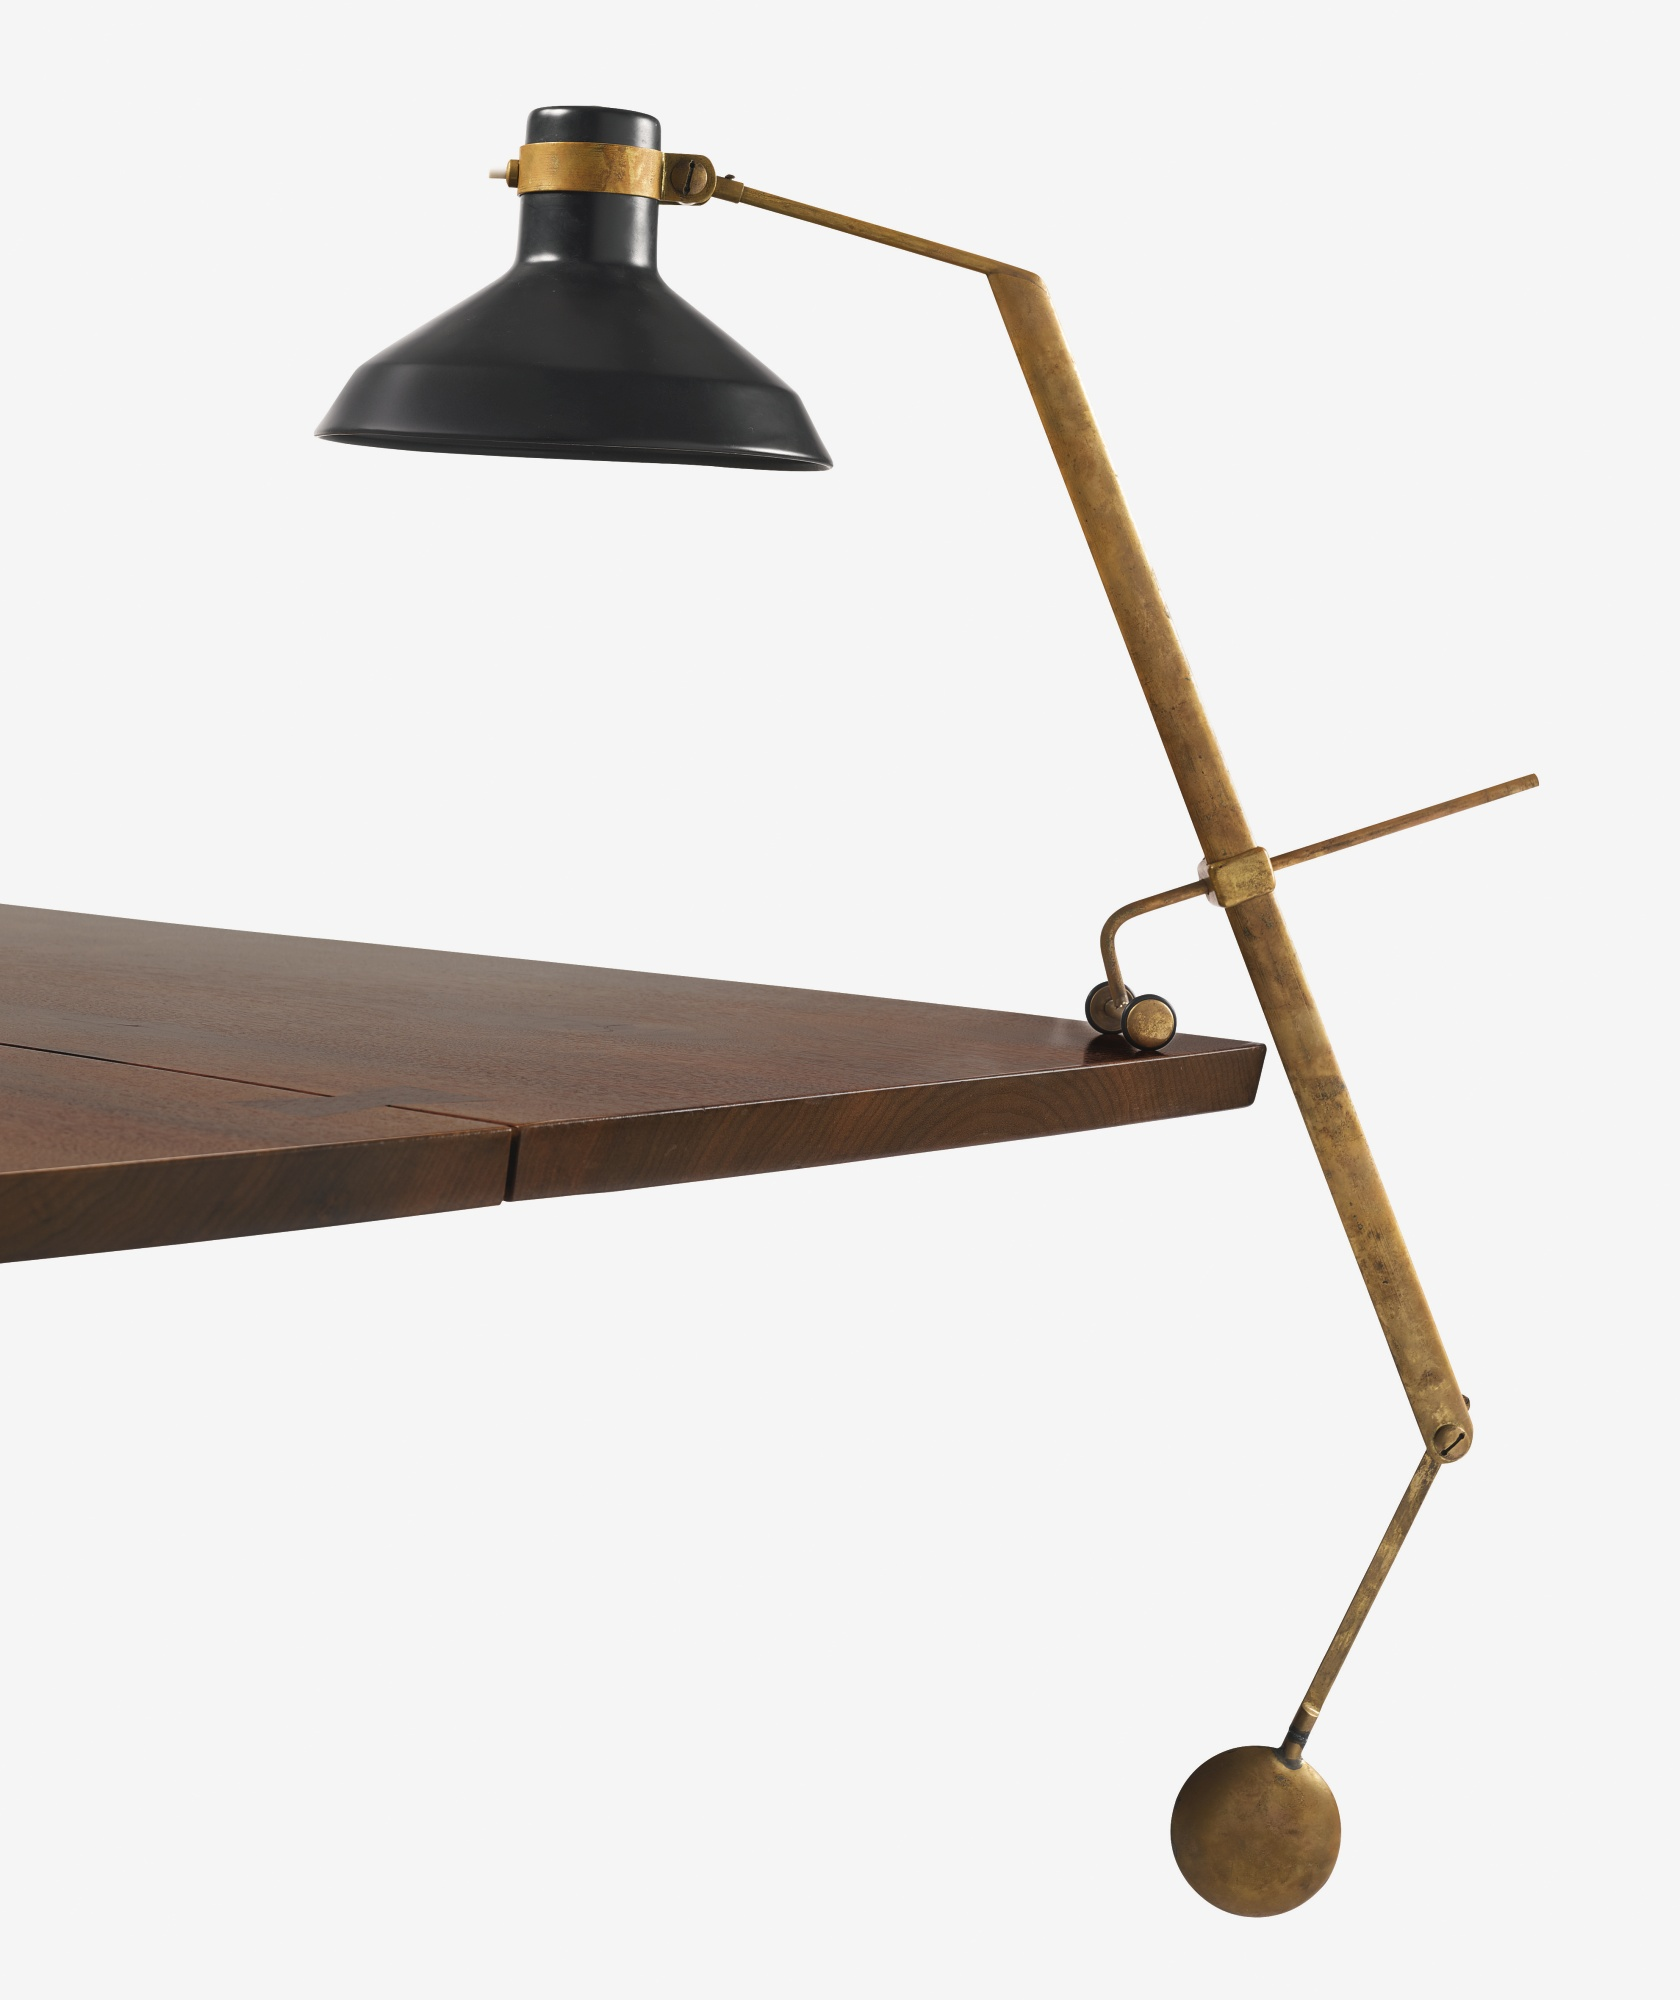 Roberto Menghi - Libra Lux Counterbalance Table Lamp-1950